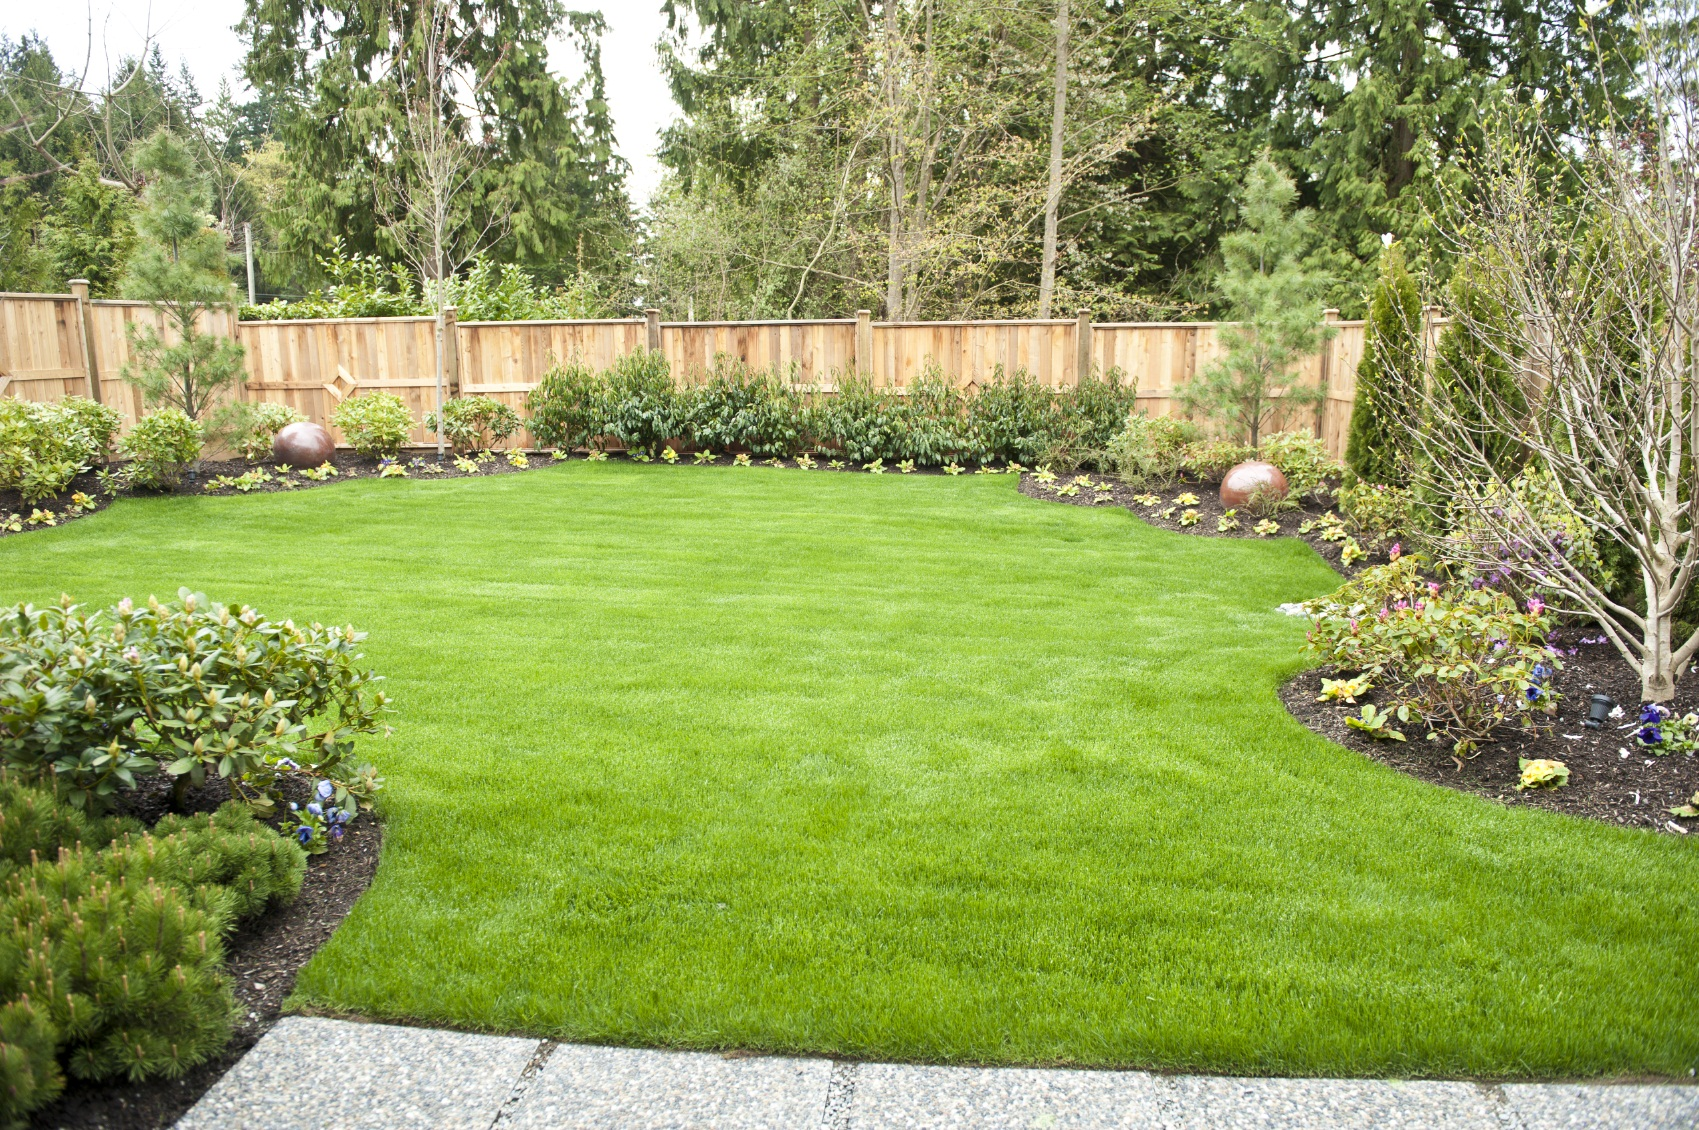 pictures of landscaped backyards photo - 1